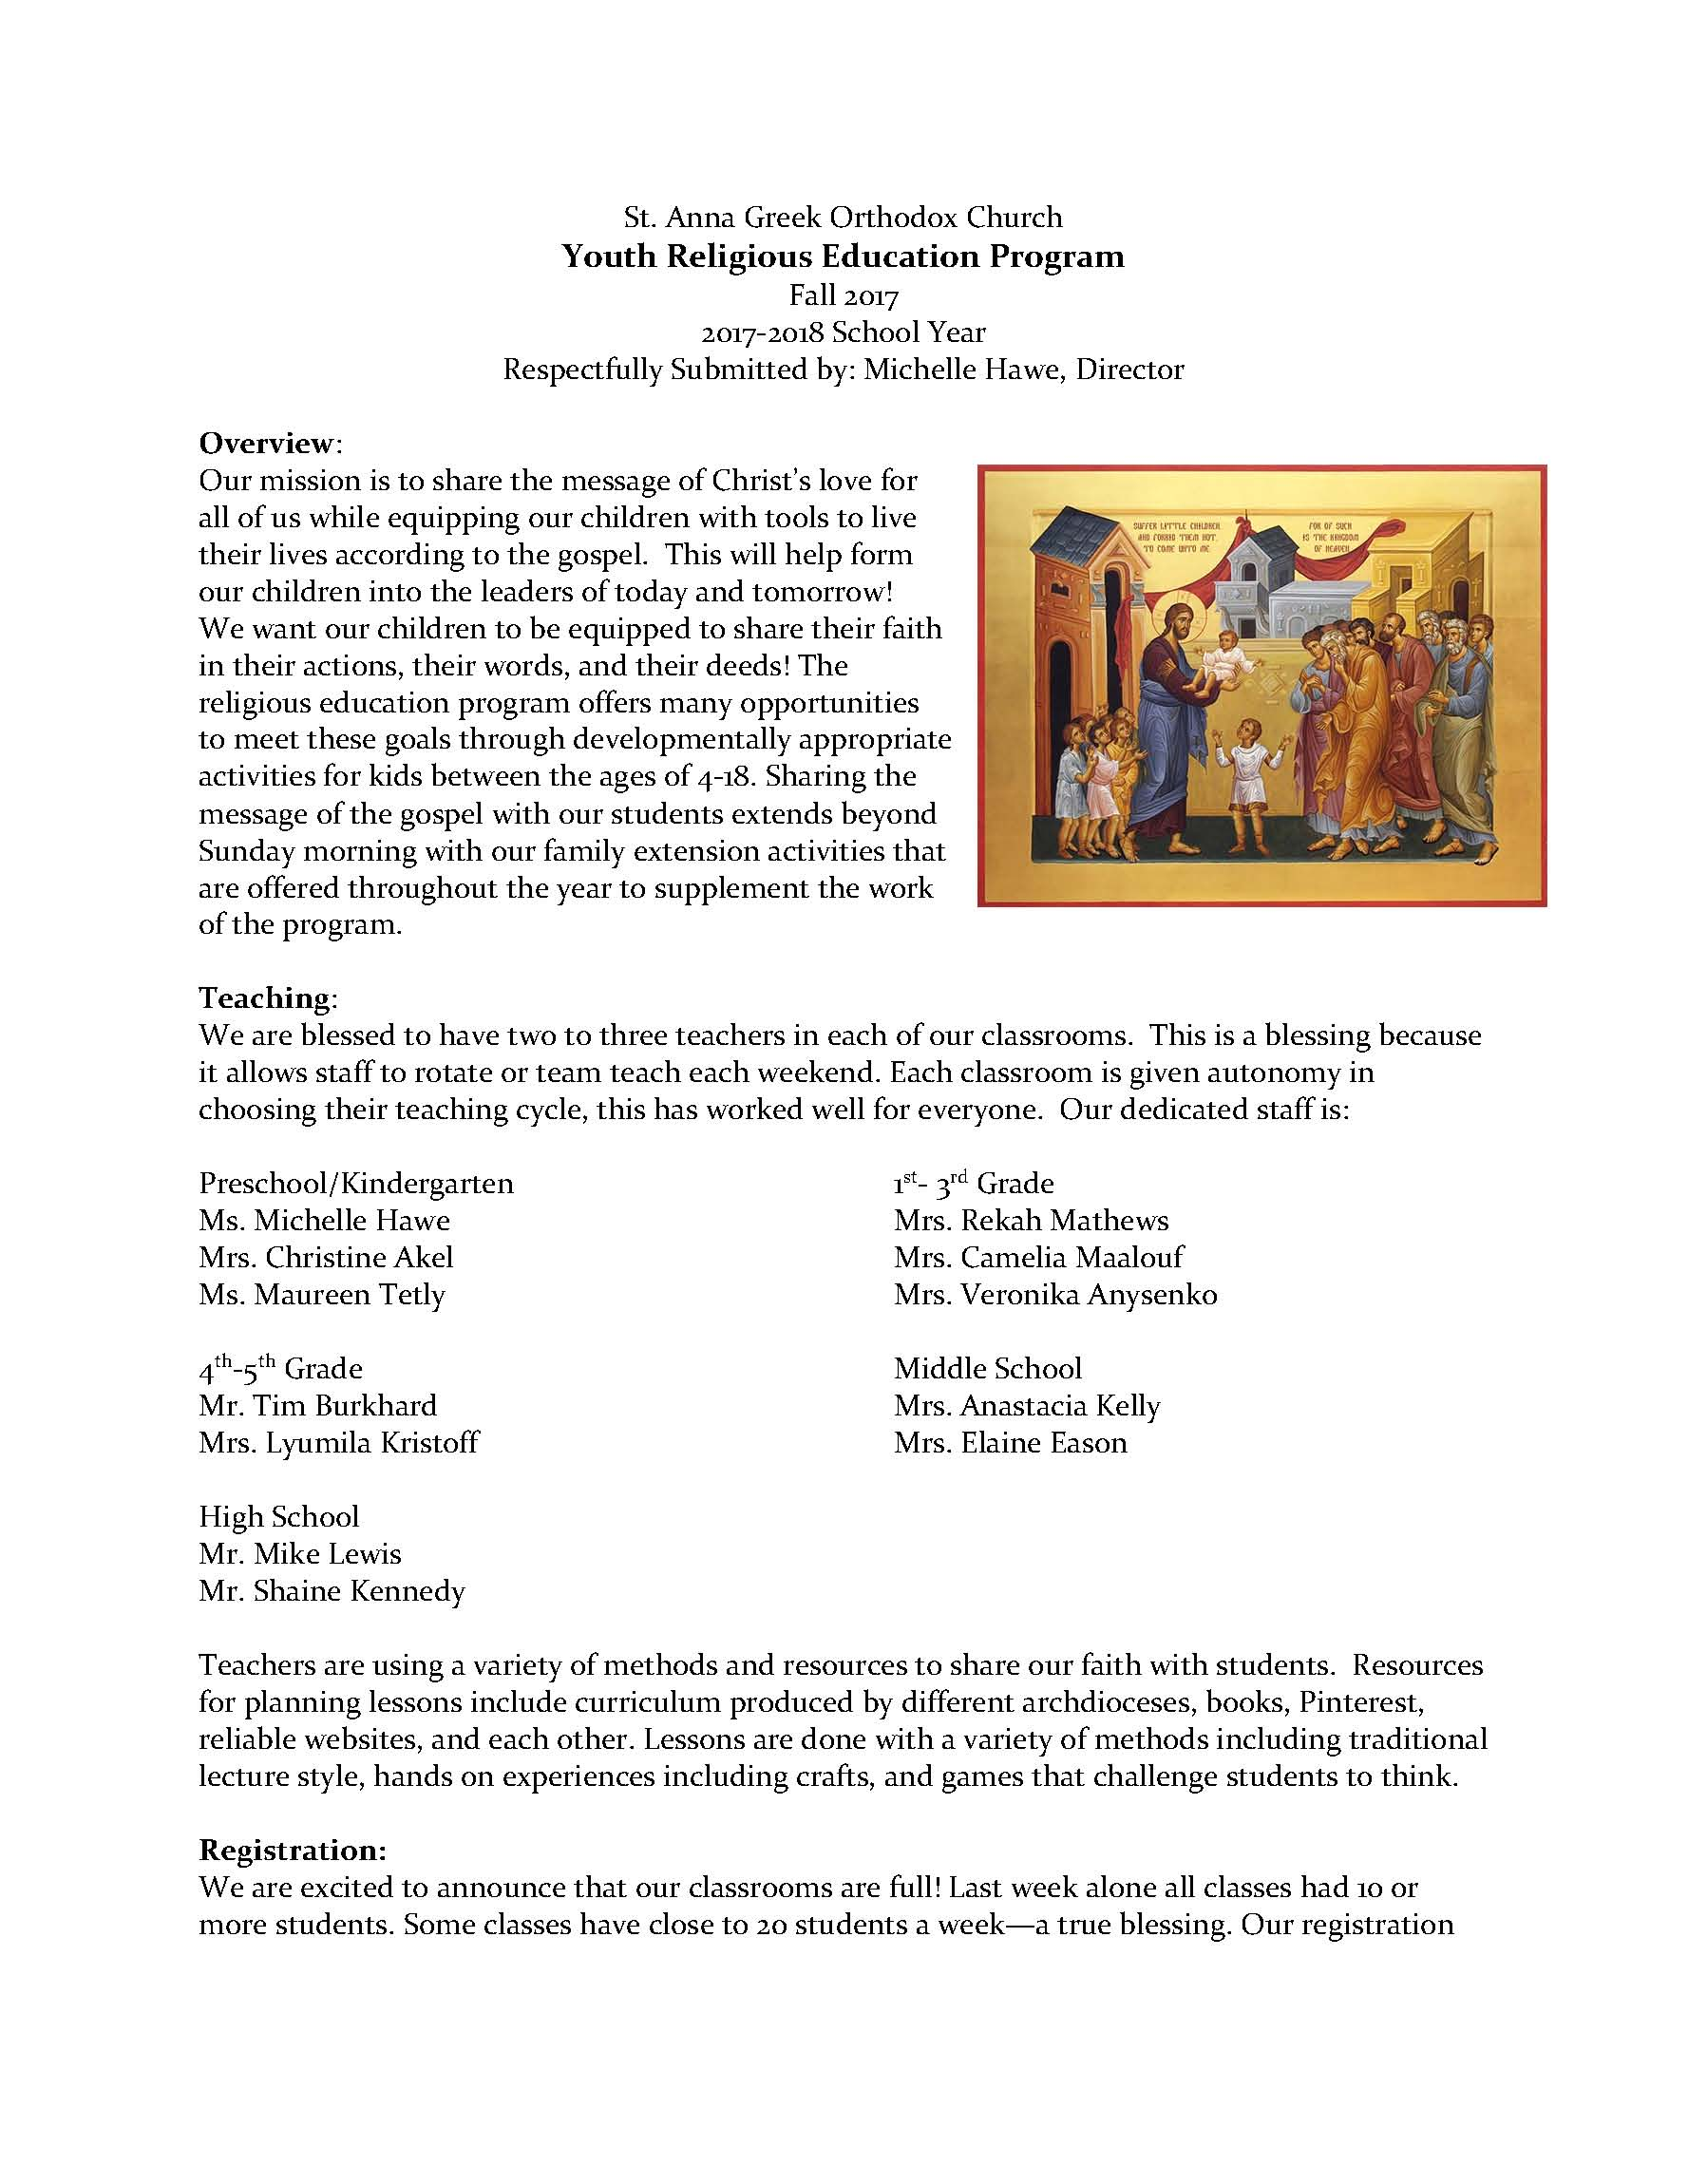 fall_general_assembly_report_17_Page_1.jpg